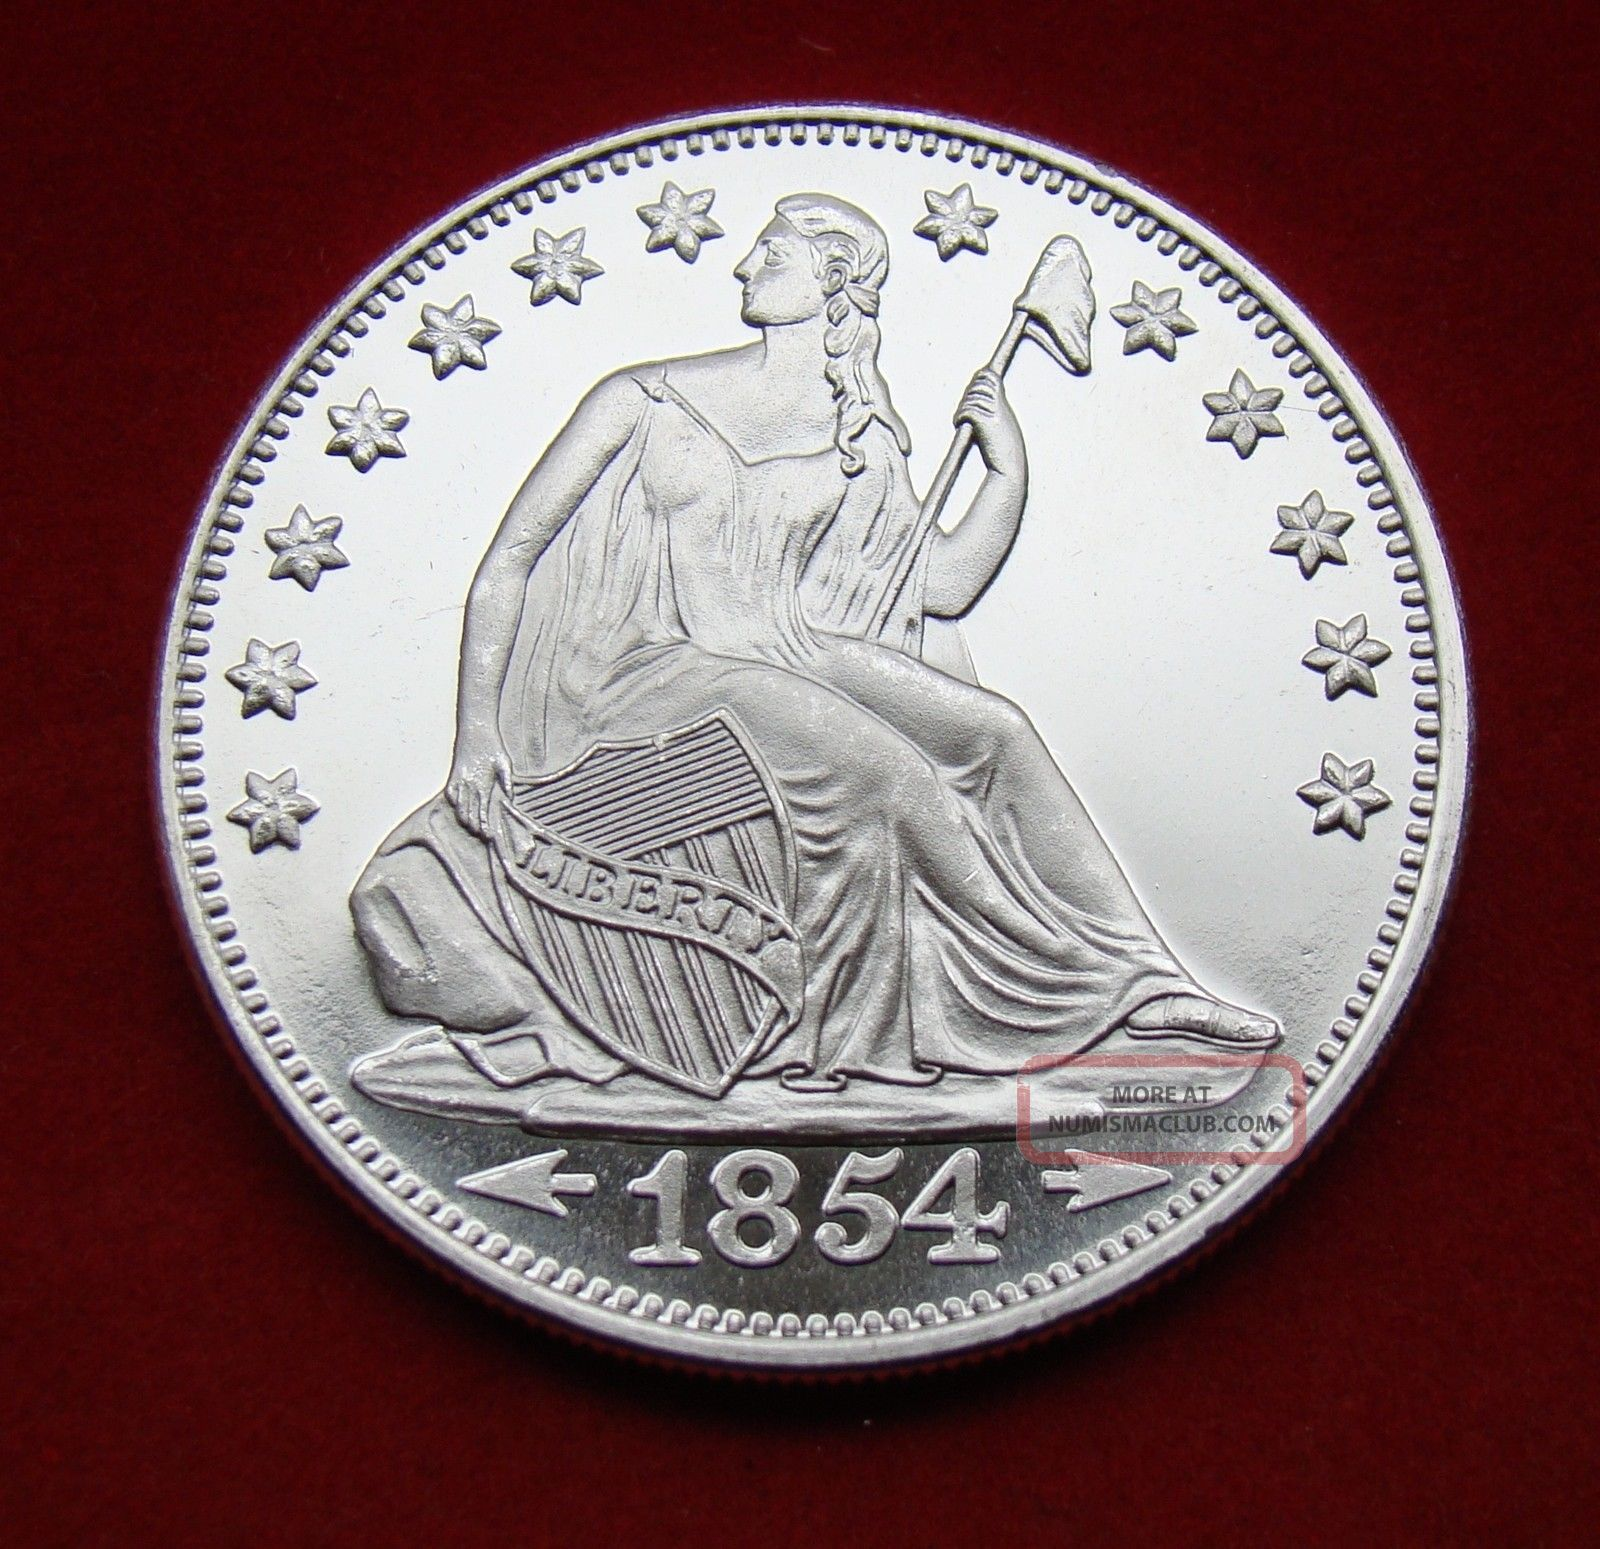 Solid Silver Round 1 Troy Oz 2016 Seated Liberty Eagle